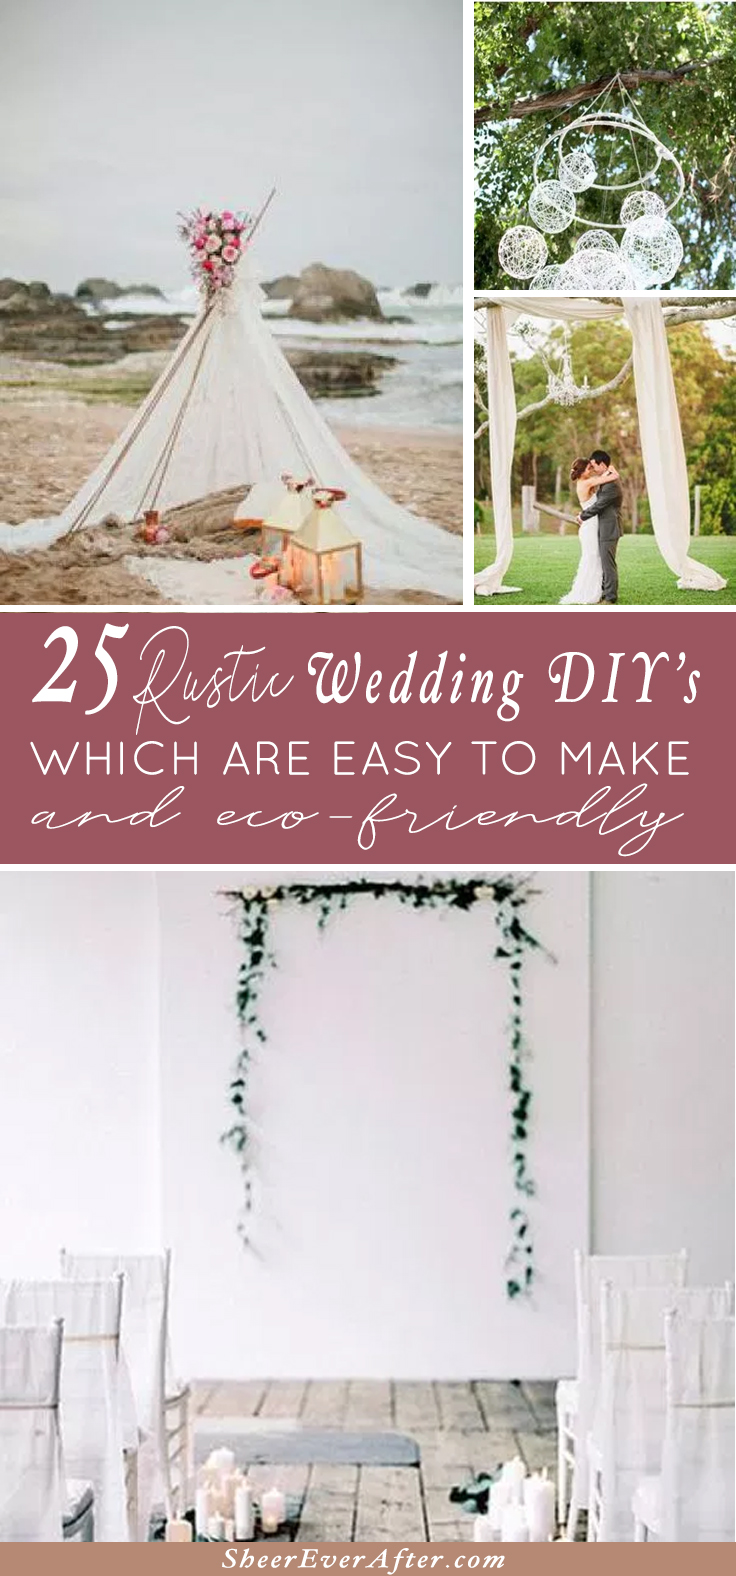 Spend more time relaxing during your engagement by choosing these EASY & GORGEOUS wedding DIY's | This and more at www.SheerEverAfter.com